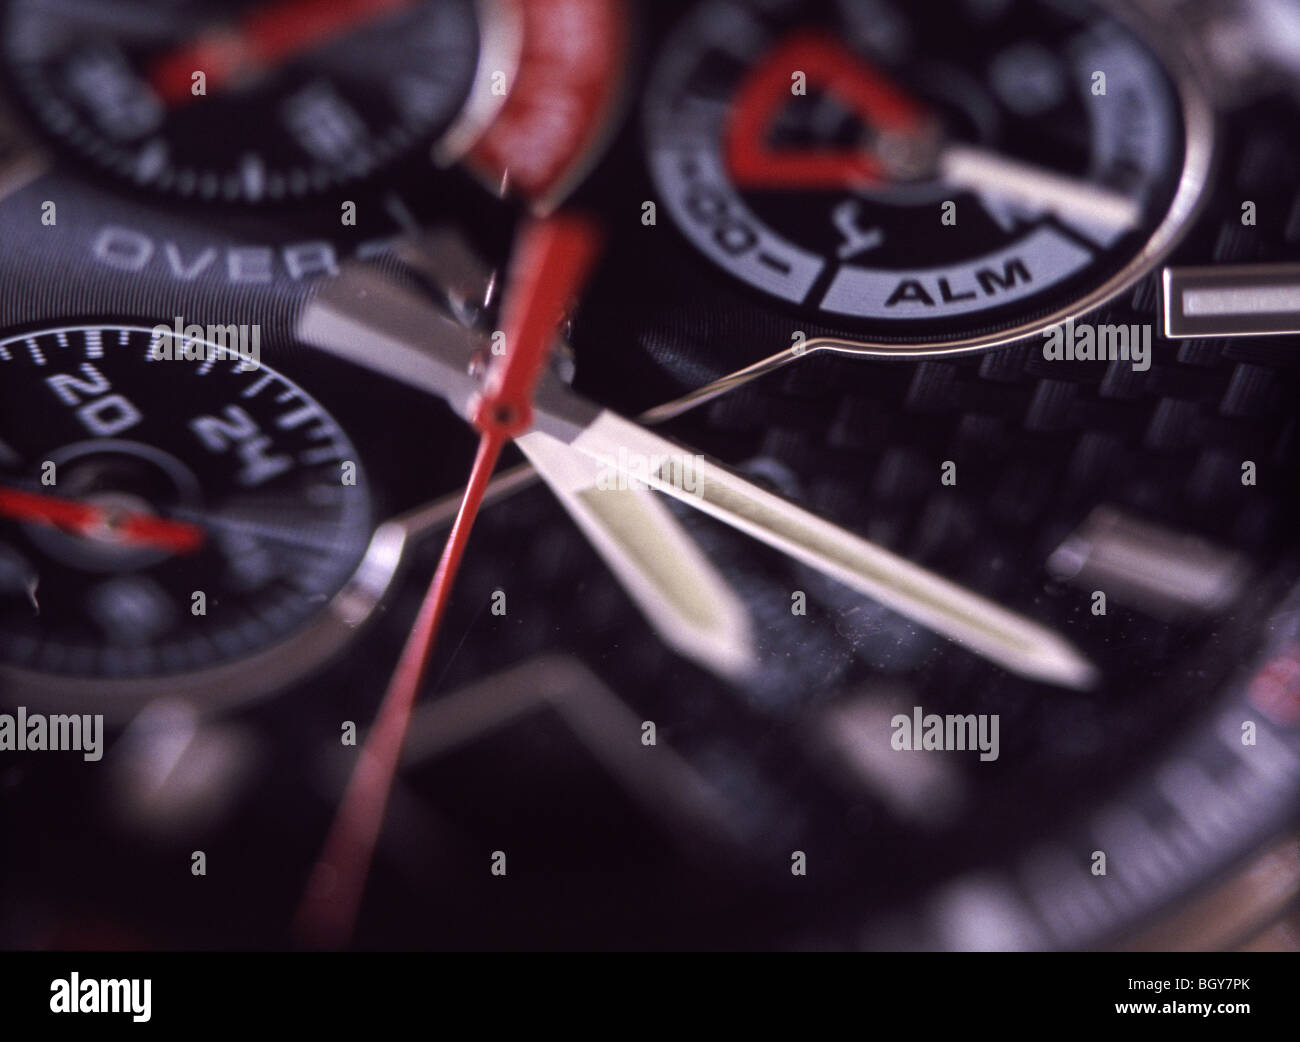 Watch Face, Chronograph - Stock Image